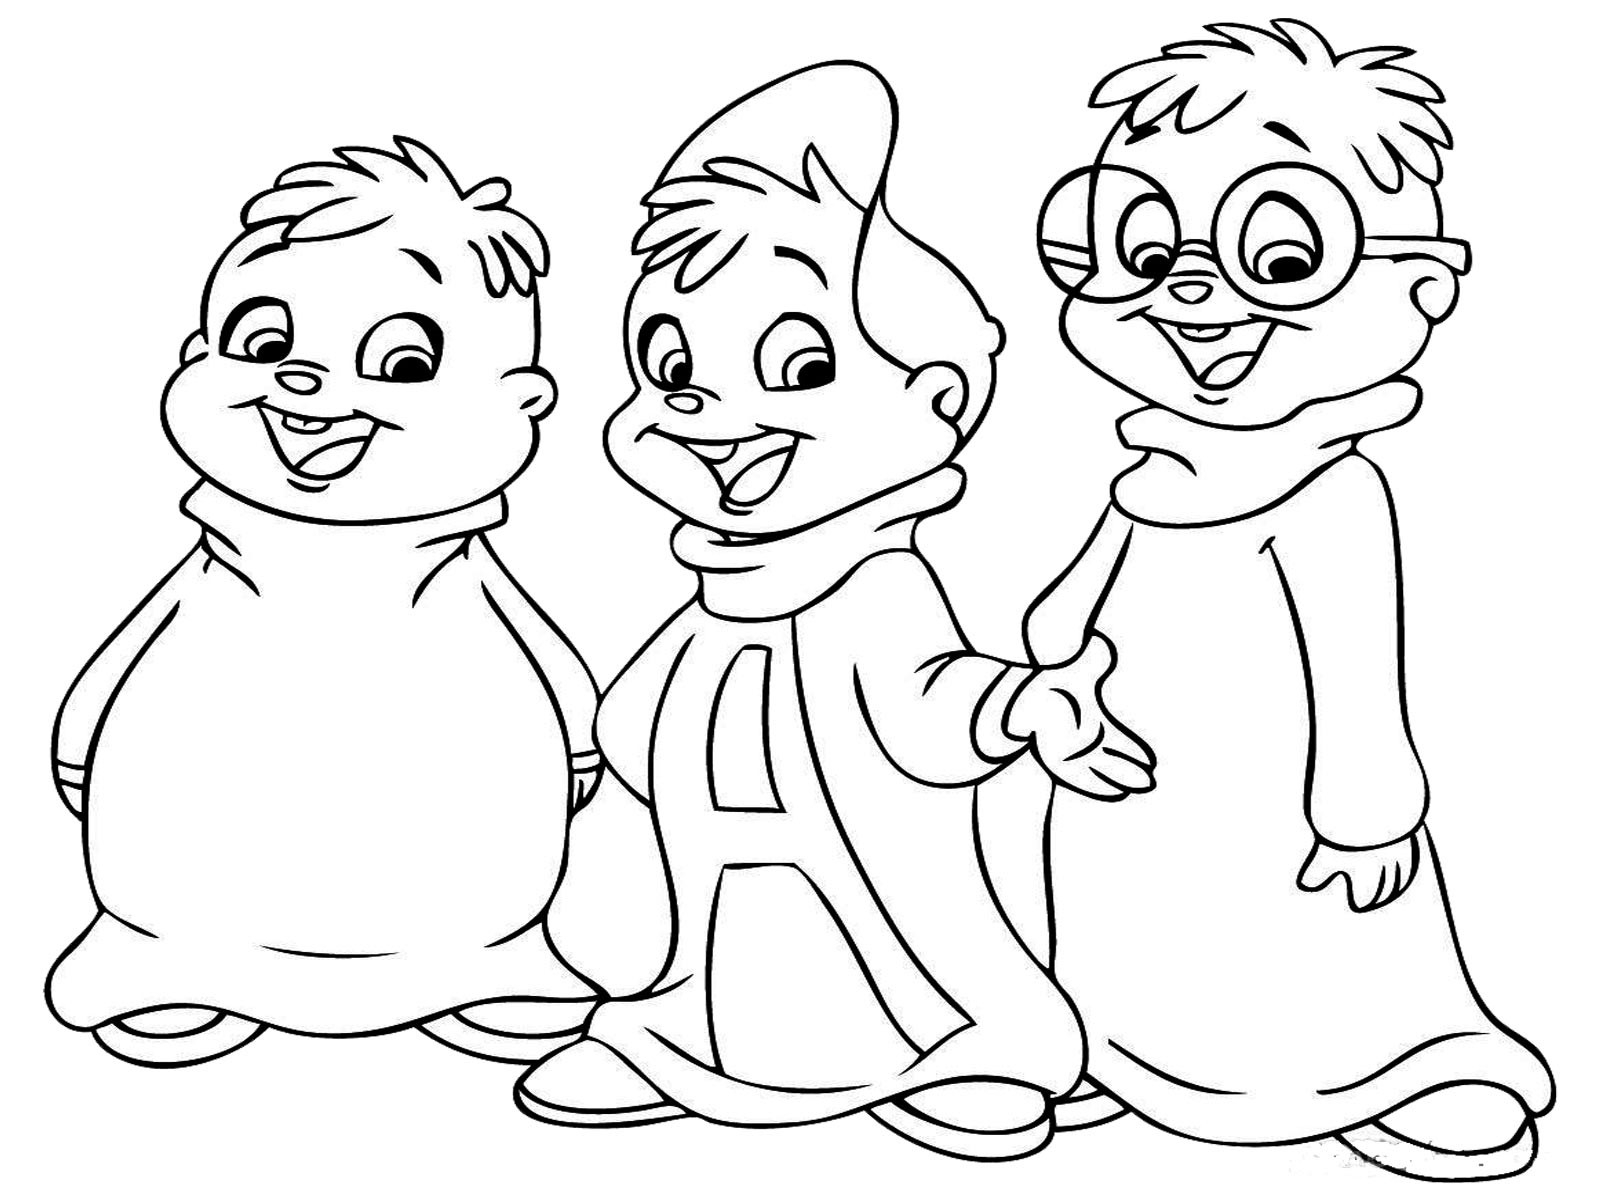 30 Nickelodeon Coloring Pages Online Gallery - Coloring Sheets